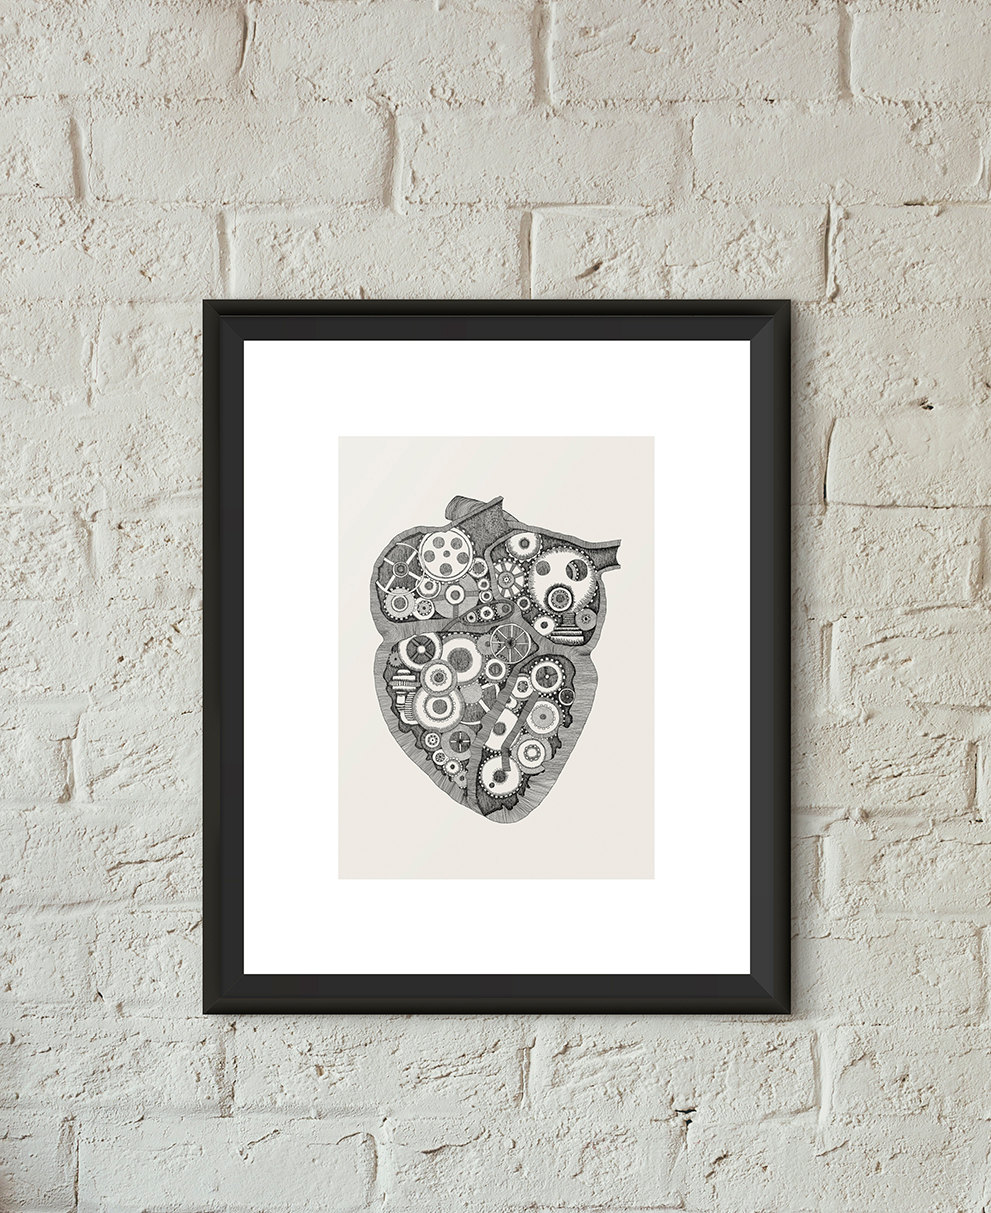 Drawn steampunk heart Illustration Poster Steampunk Heart Drawn